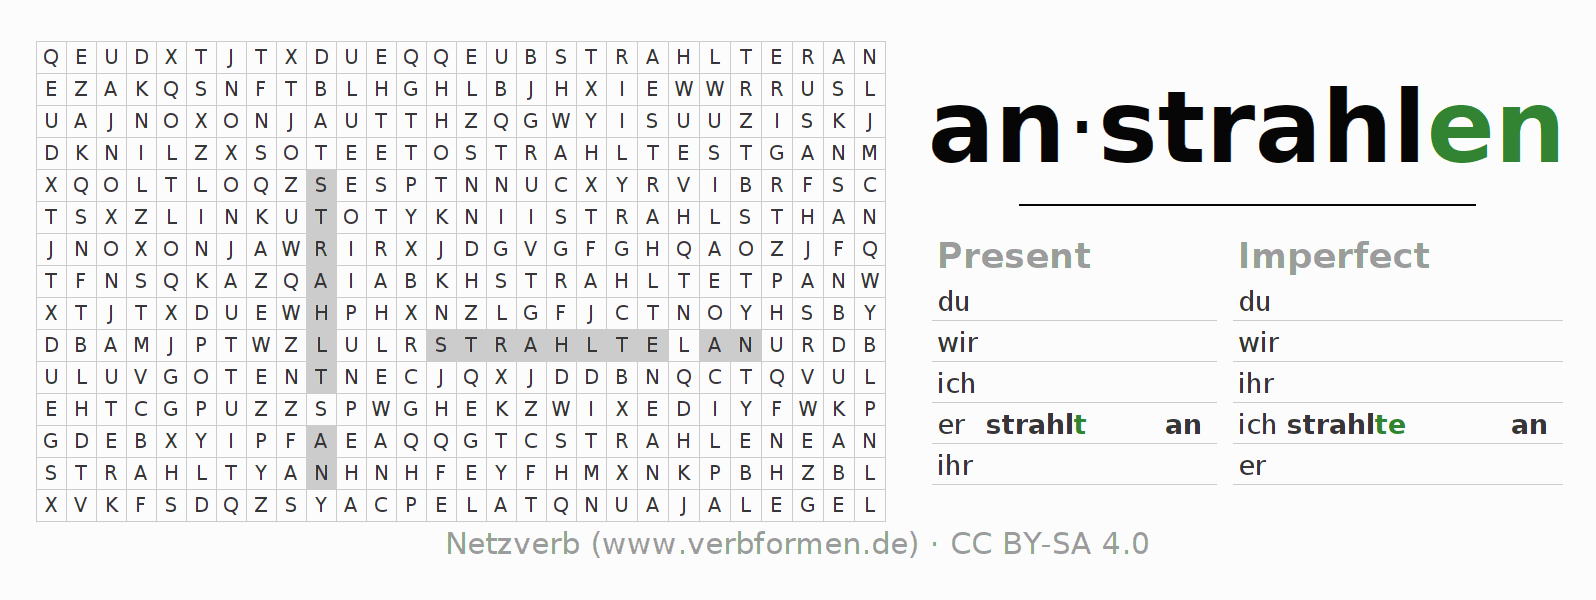 Word search puzzle for the conjugation of the verb anstrahlen